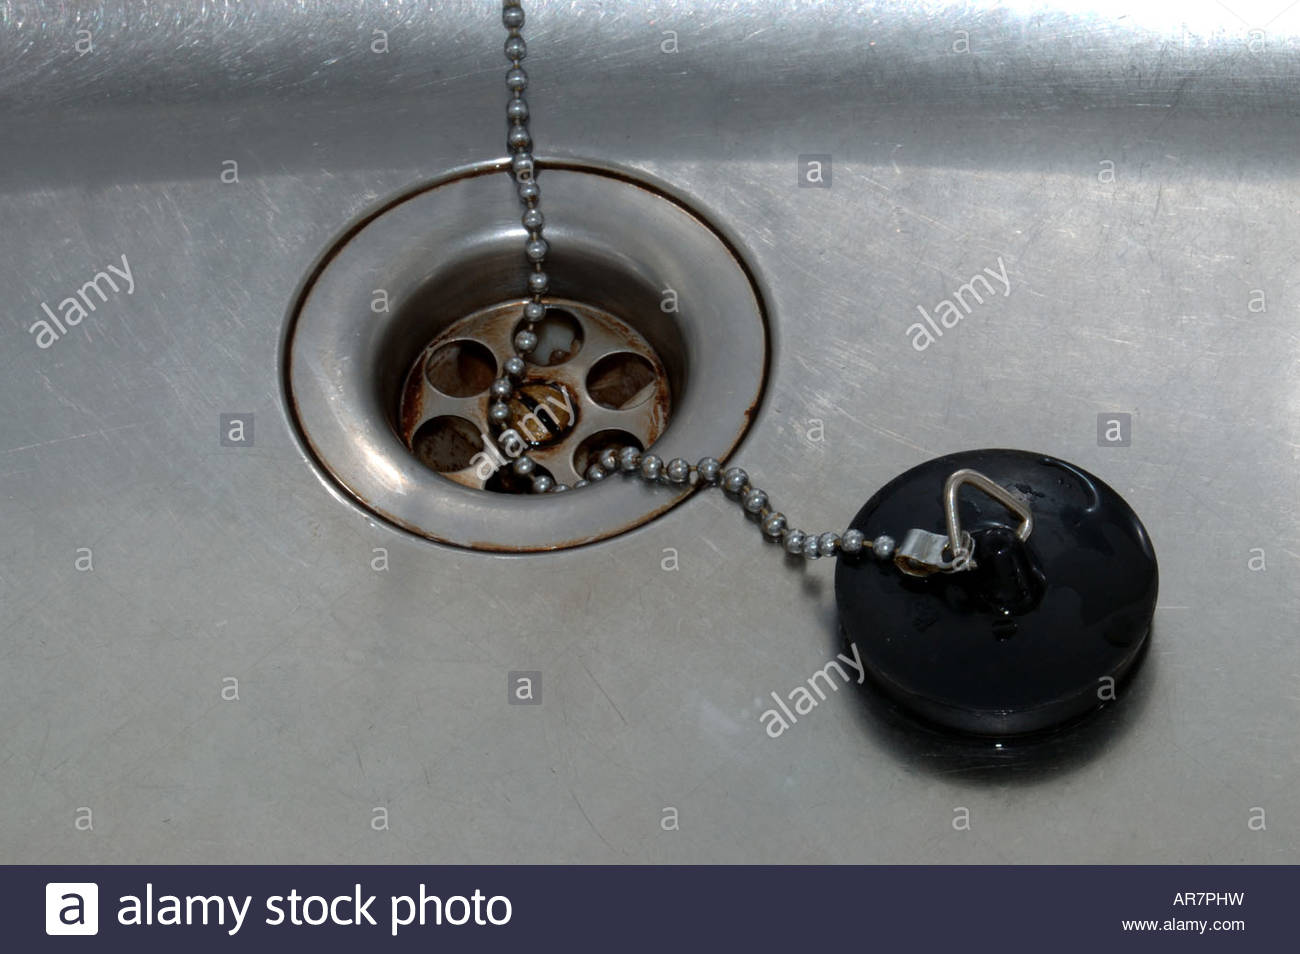 Kitchen sink plug and plughole a little bit dirty and - Kitchen sink plug ...